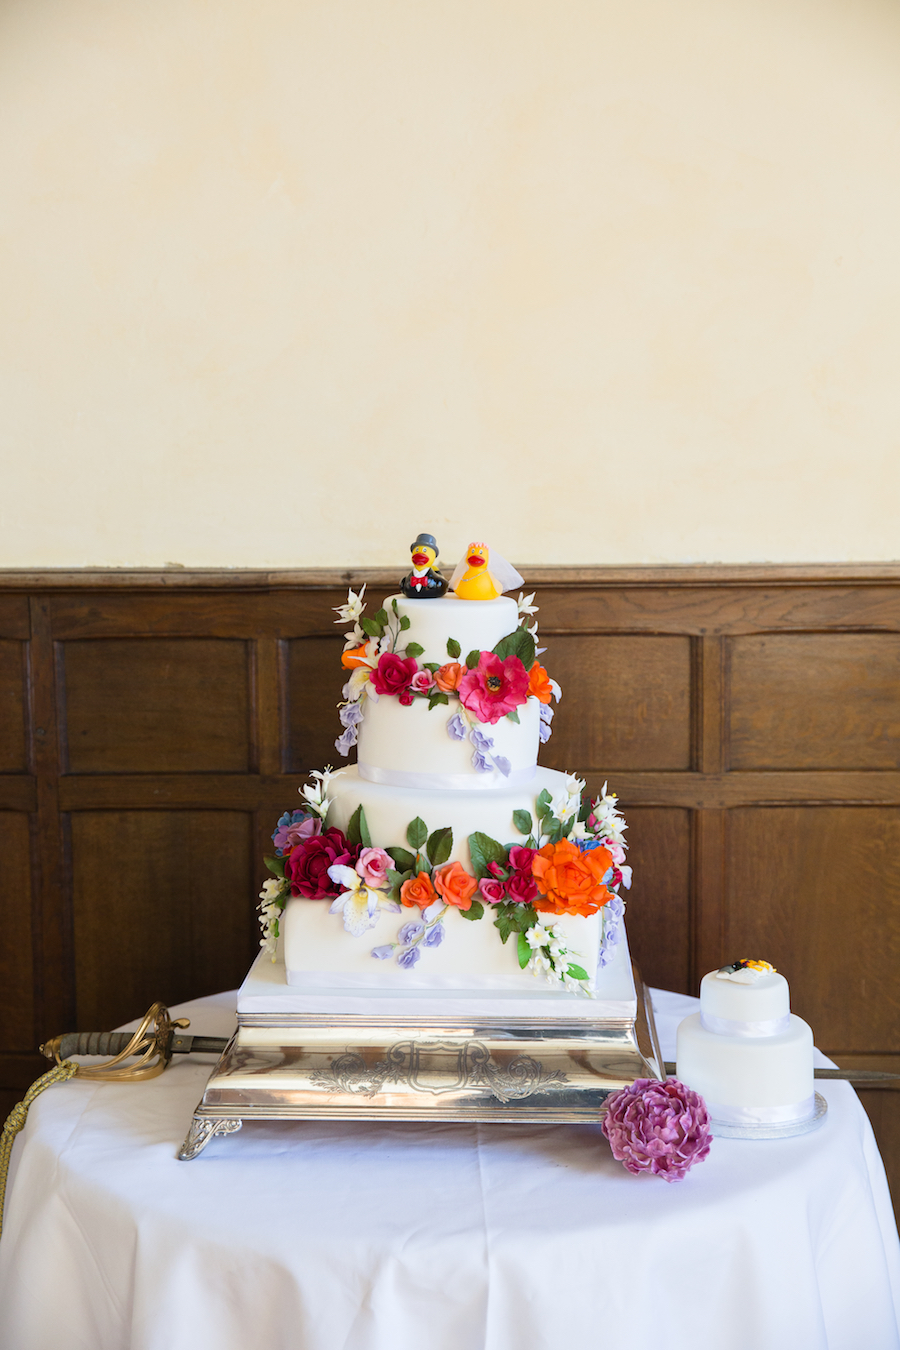 Real wedding by Ayshea Goldberg Photography at Layer Marney Tower (47)